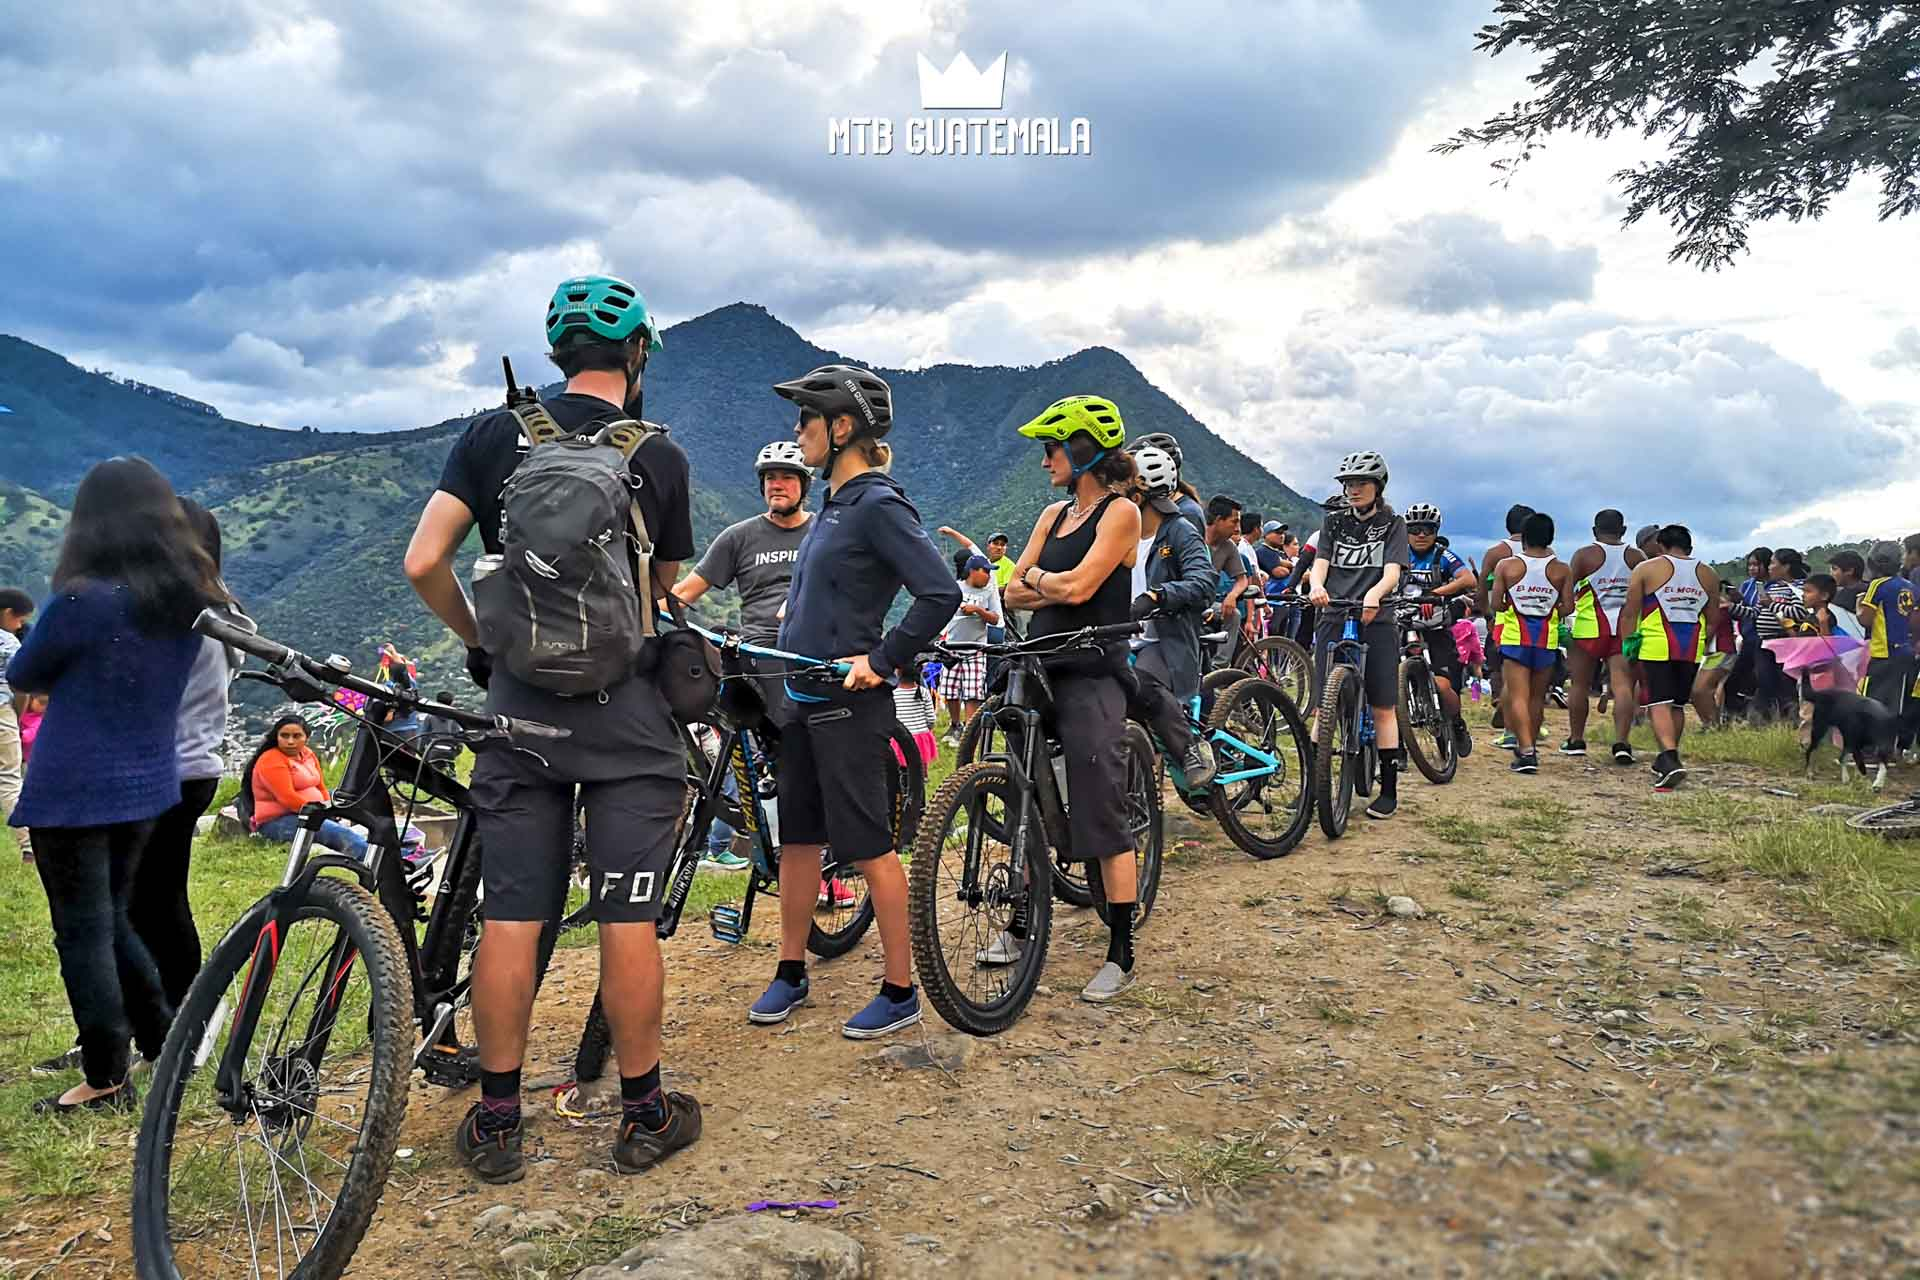 Mountain BIking to the festival de Barriletes Gigantes